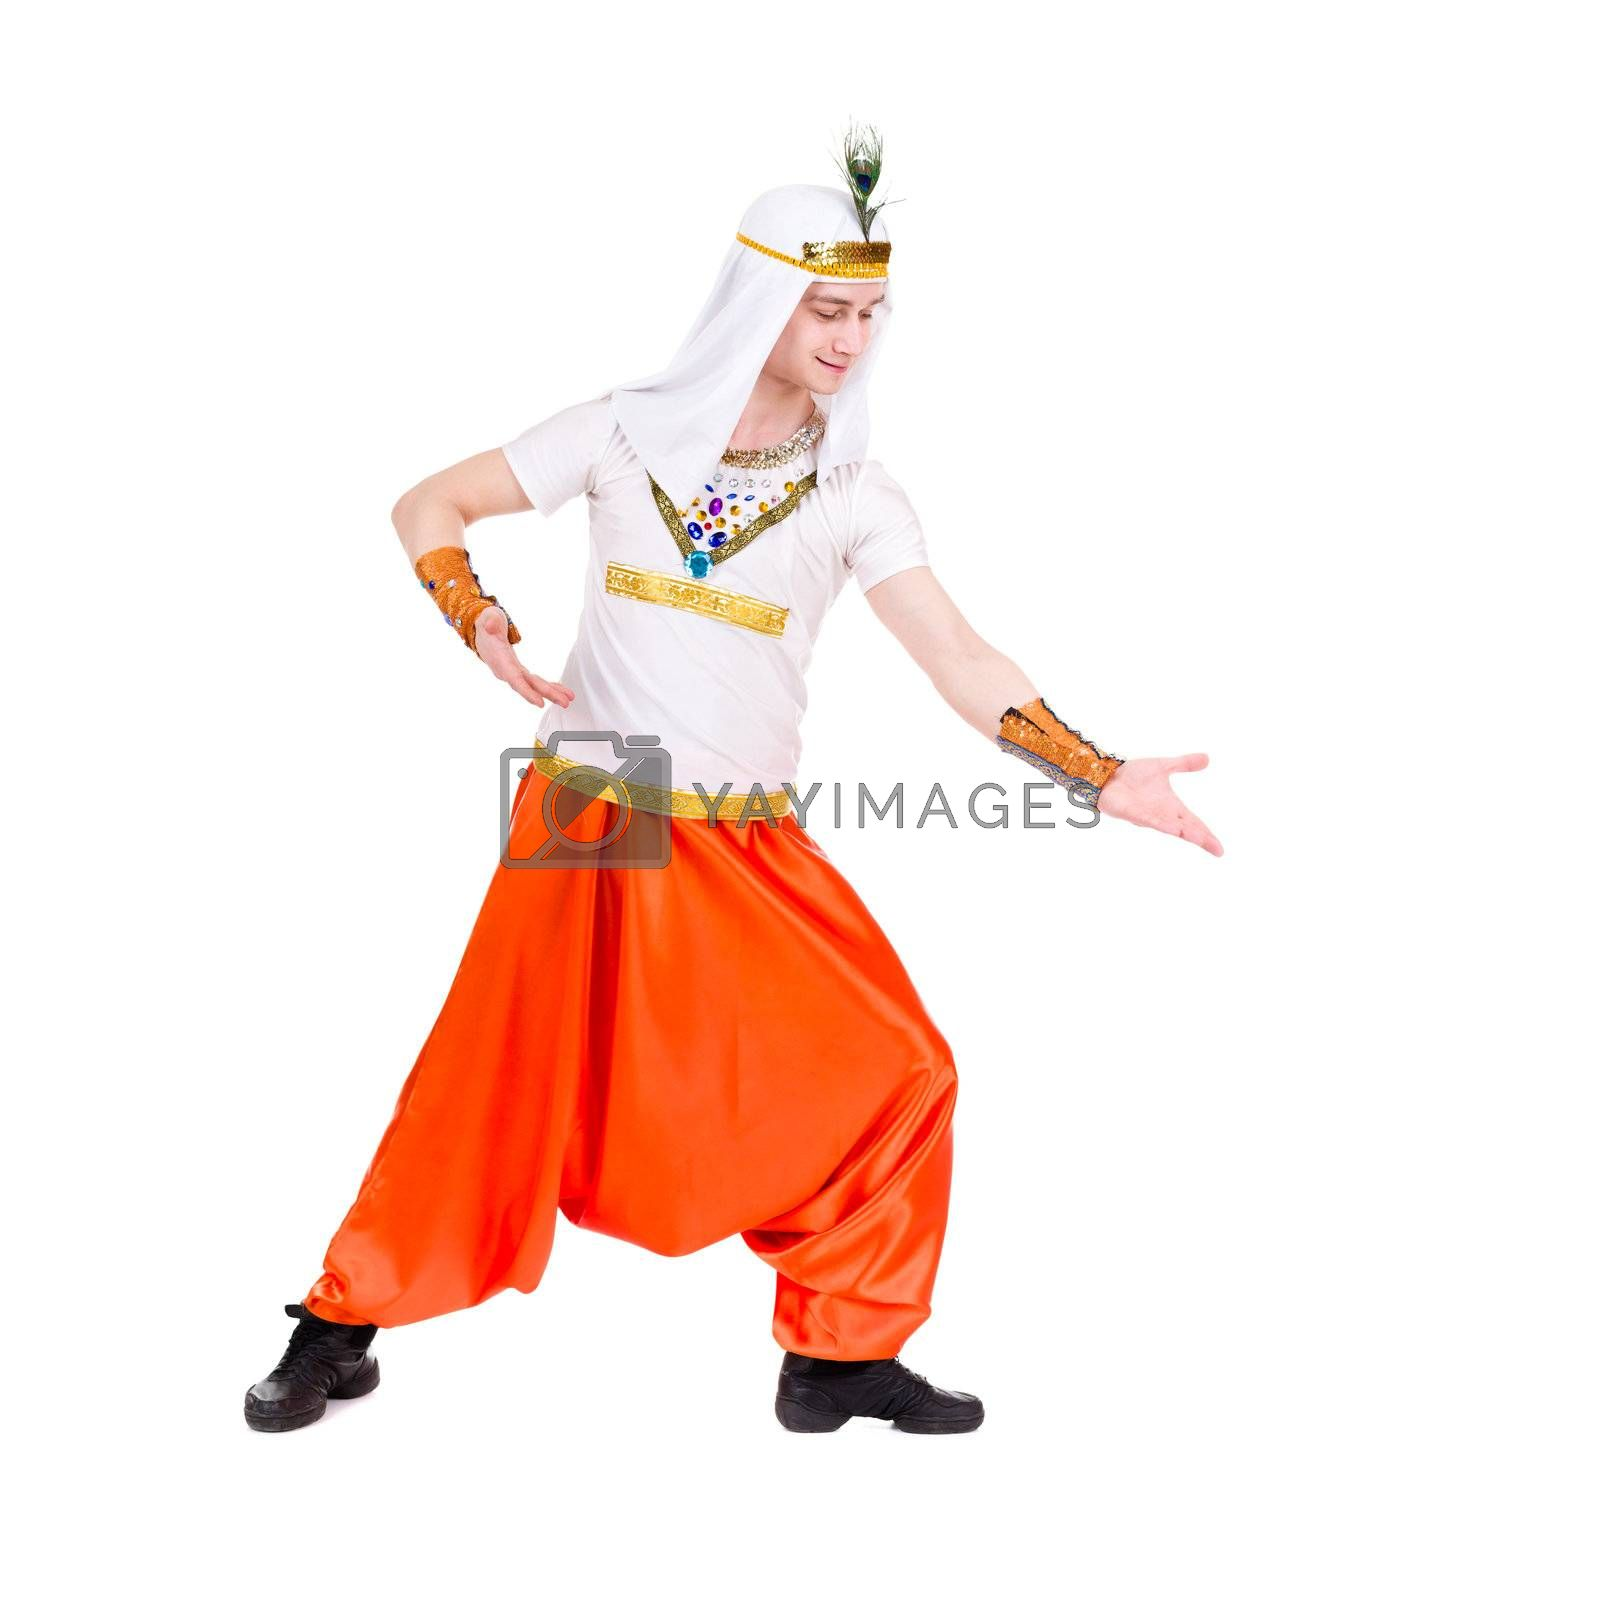 Pointing pharaoh wearing a egyptian costume. Isolated on white background in full length.